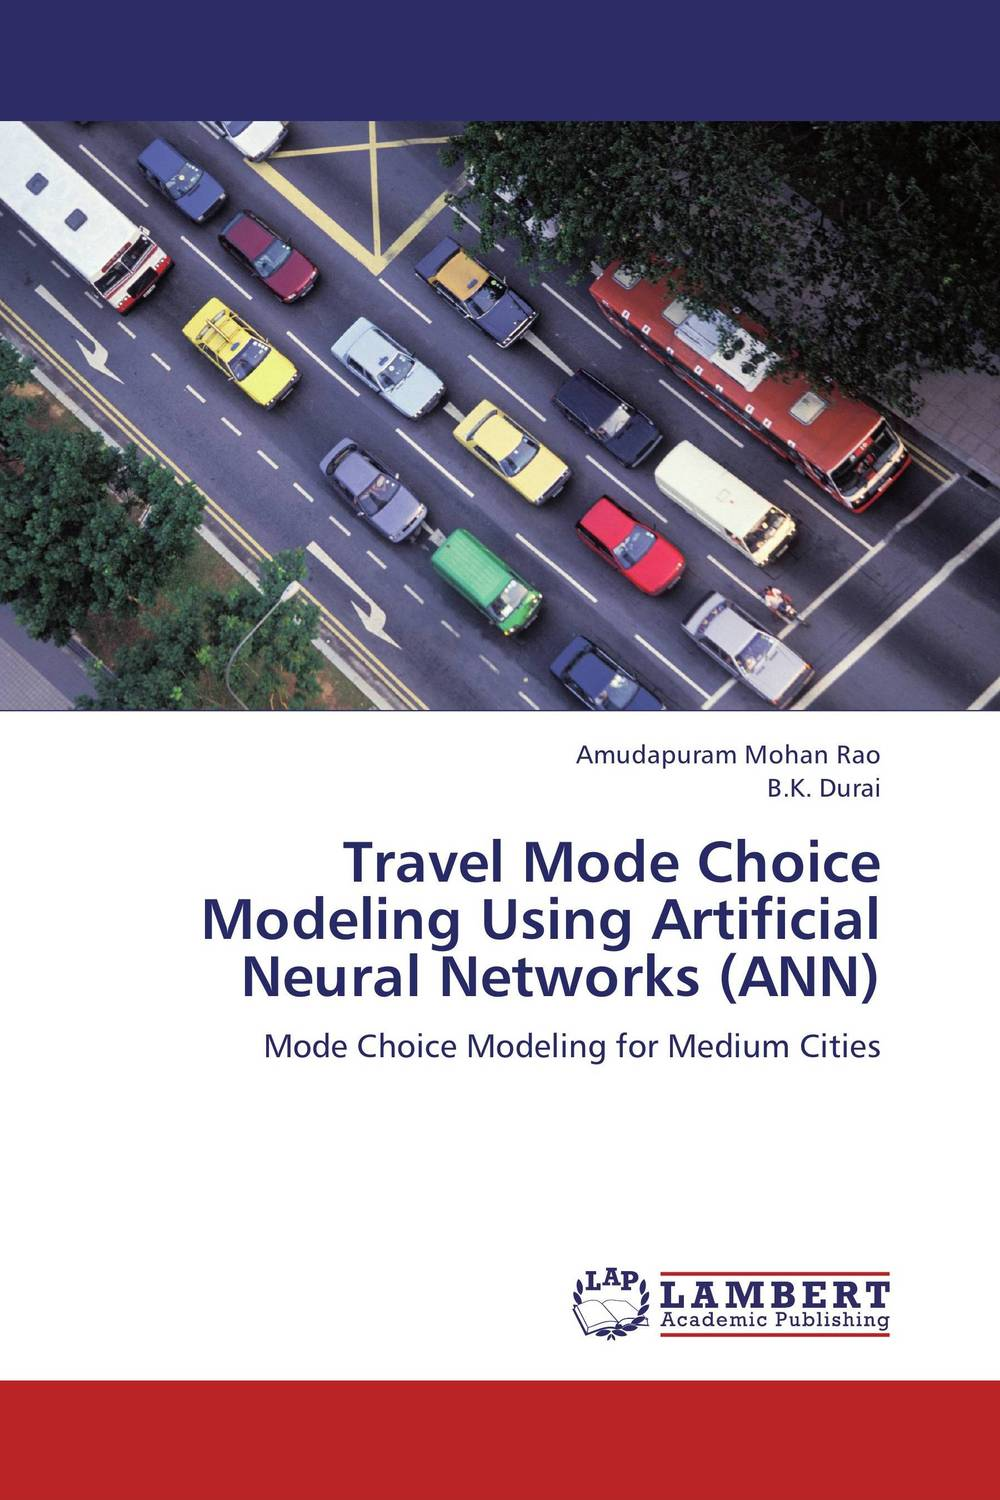 Travel Mode Choice Modeling Using Artificial Neural Networks (ANN) seiko часы seiko skp393p1 коллекция premier